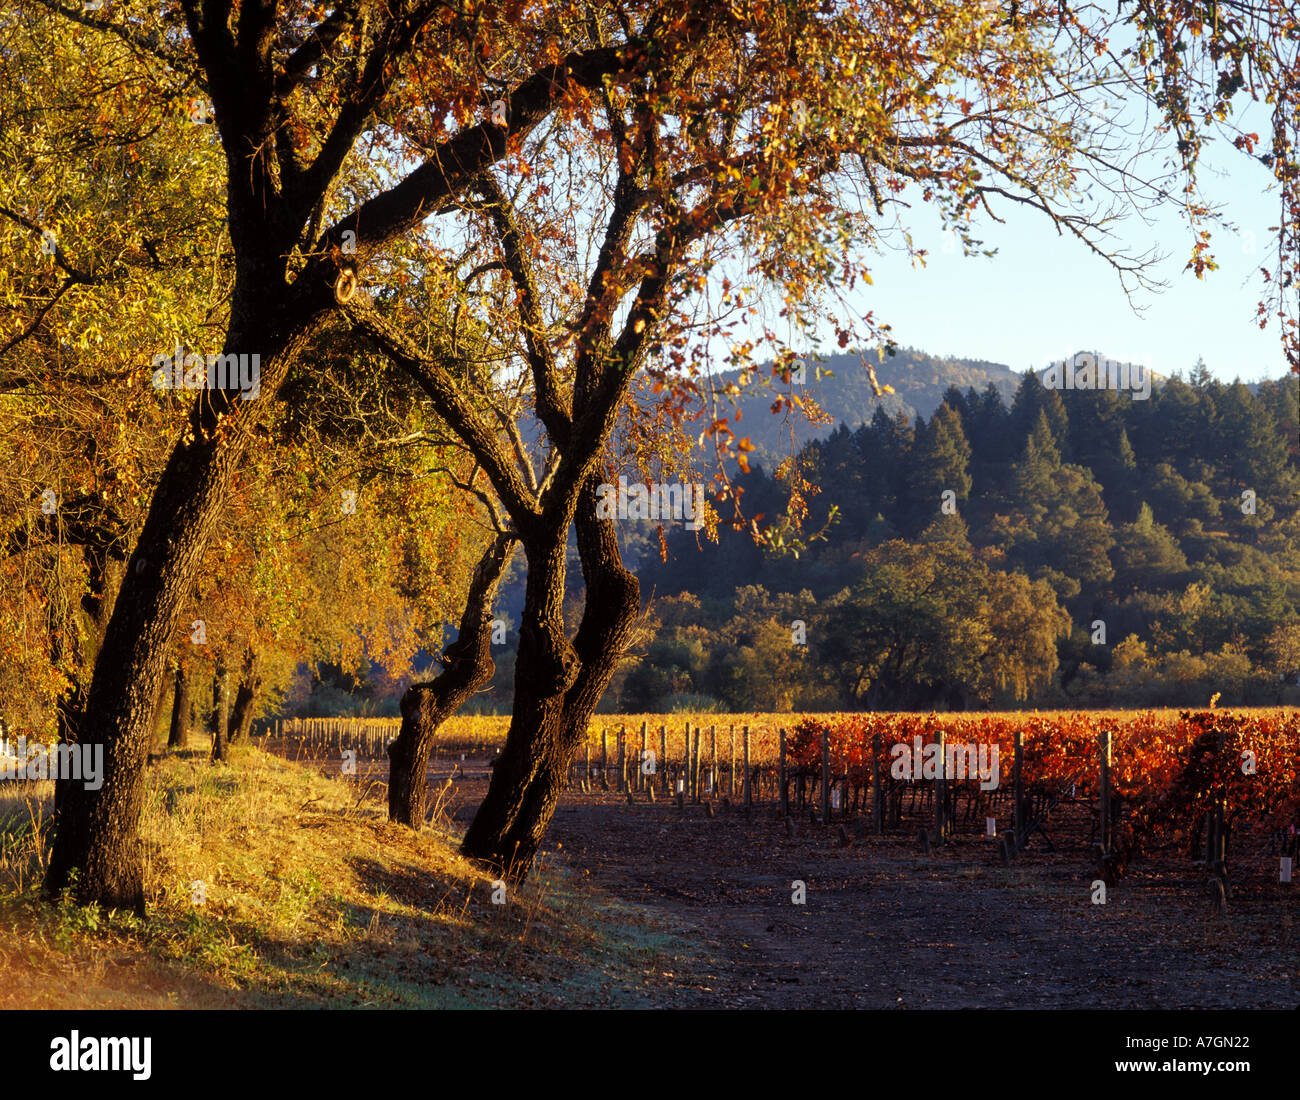 USA, California, Napa Valley, Calistoga. Morning sun skims over the valley floor and its oaks and vineyards. Stock Photo